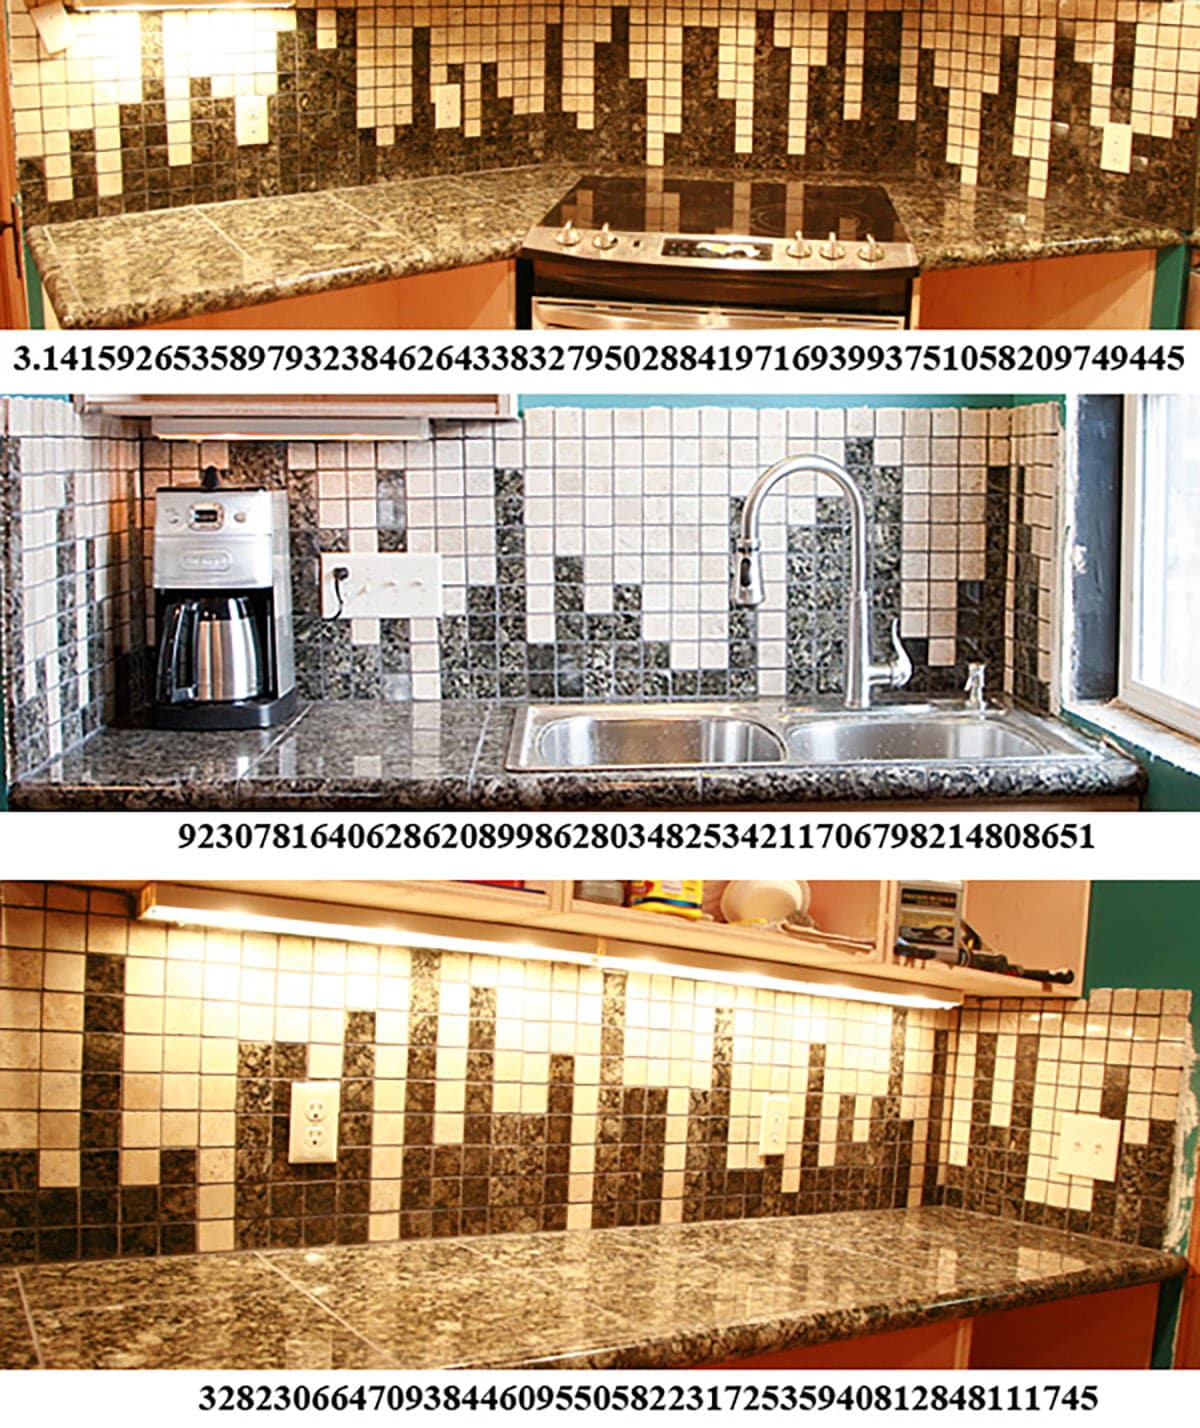 A 3 part compilation image showing sections of the backsplash, with the represented numbers listed beneath each section.